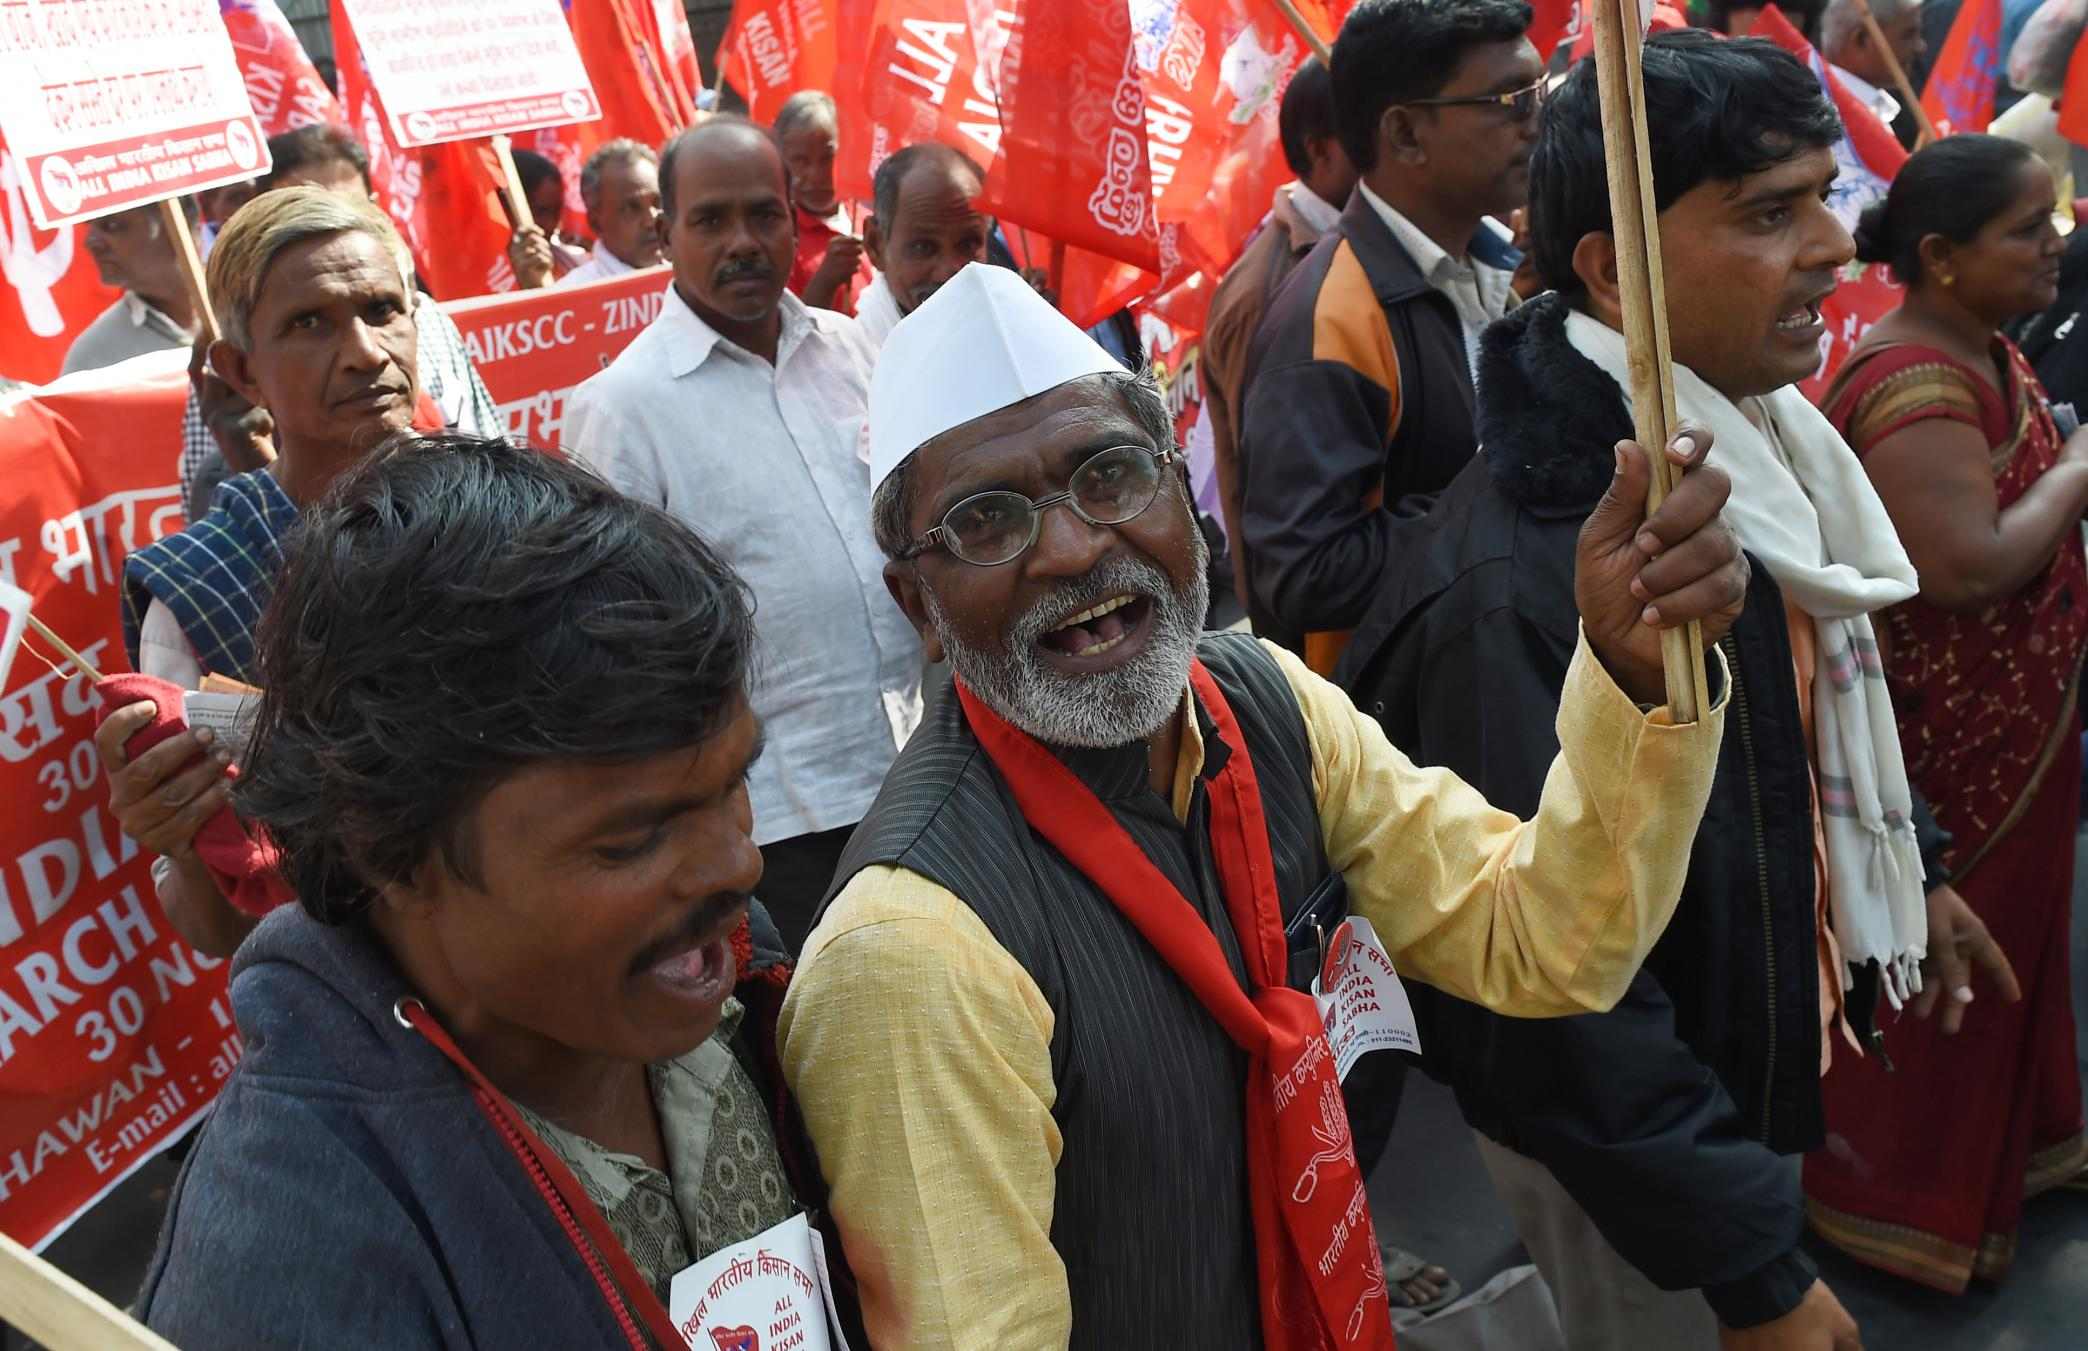 Opposition leaders unite against India's brewing farm crisisAs tens of thousands of farmers marched to the Indian Parliament to voice their distress, leaders of opposition parties arrived to show support